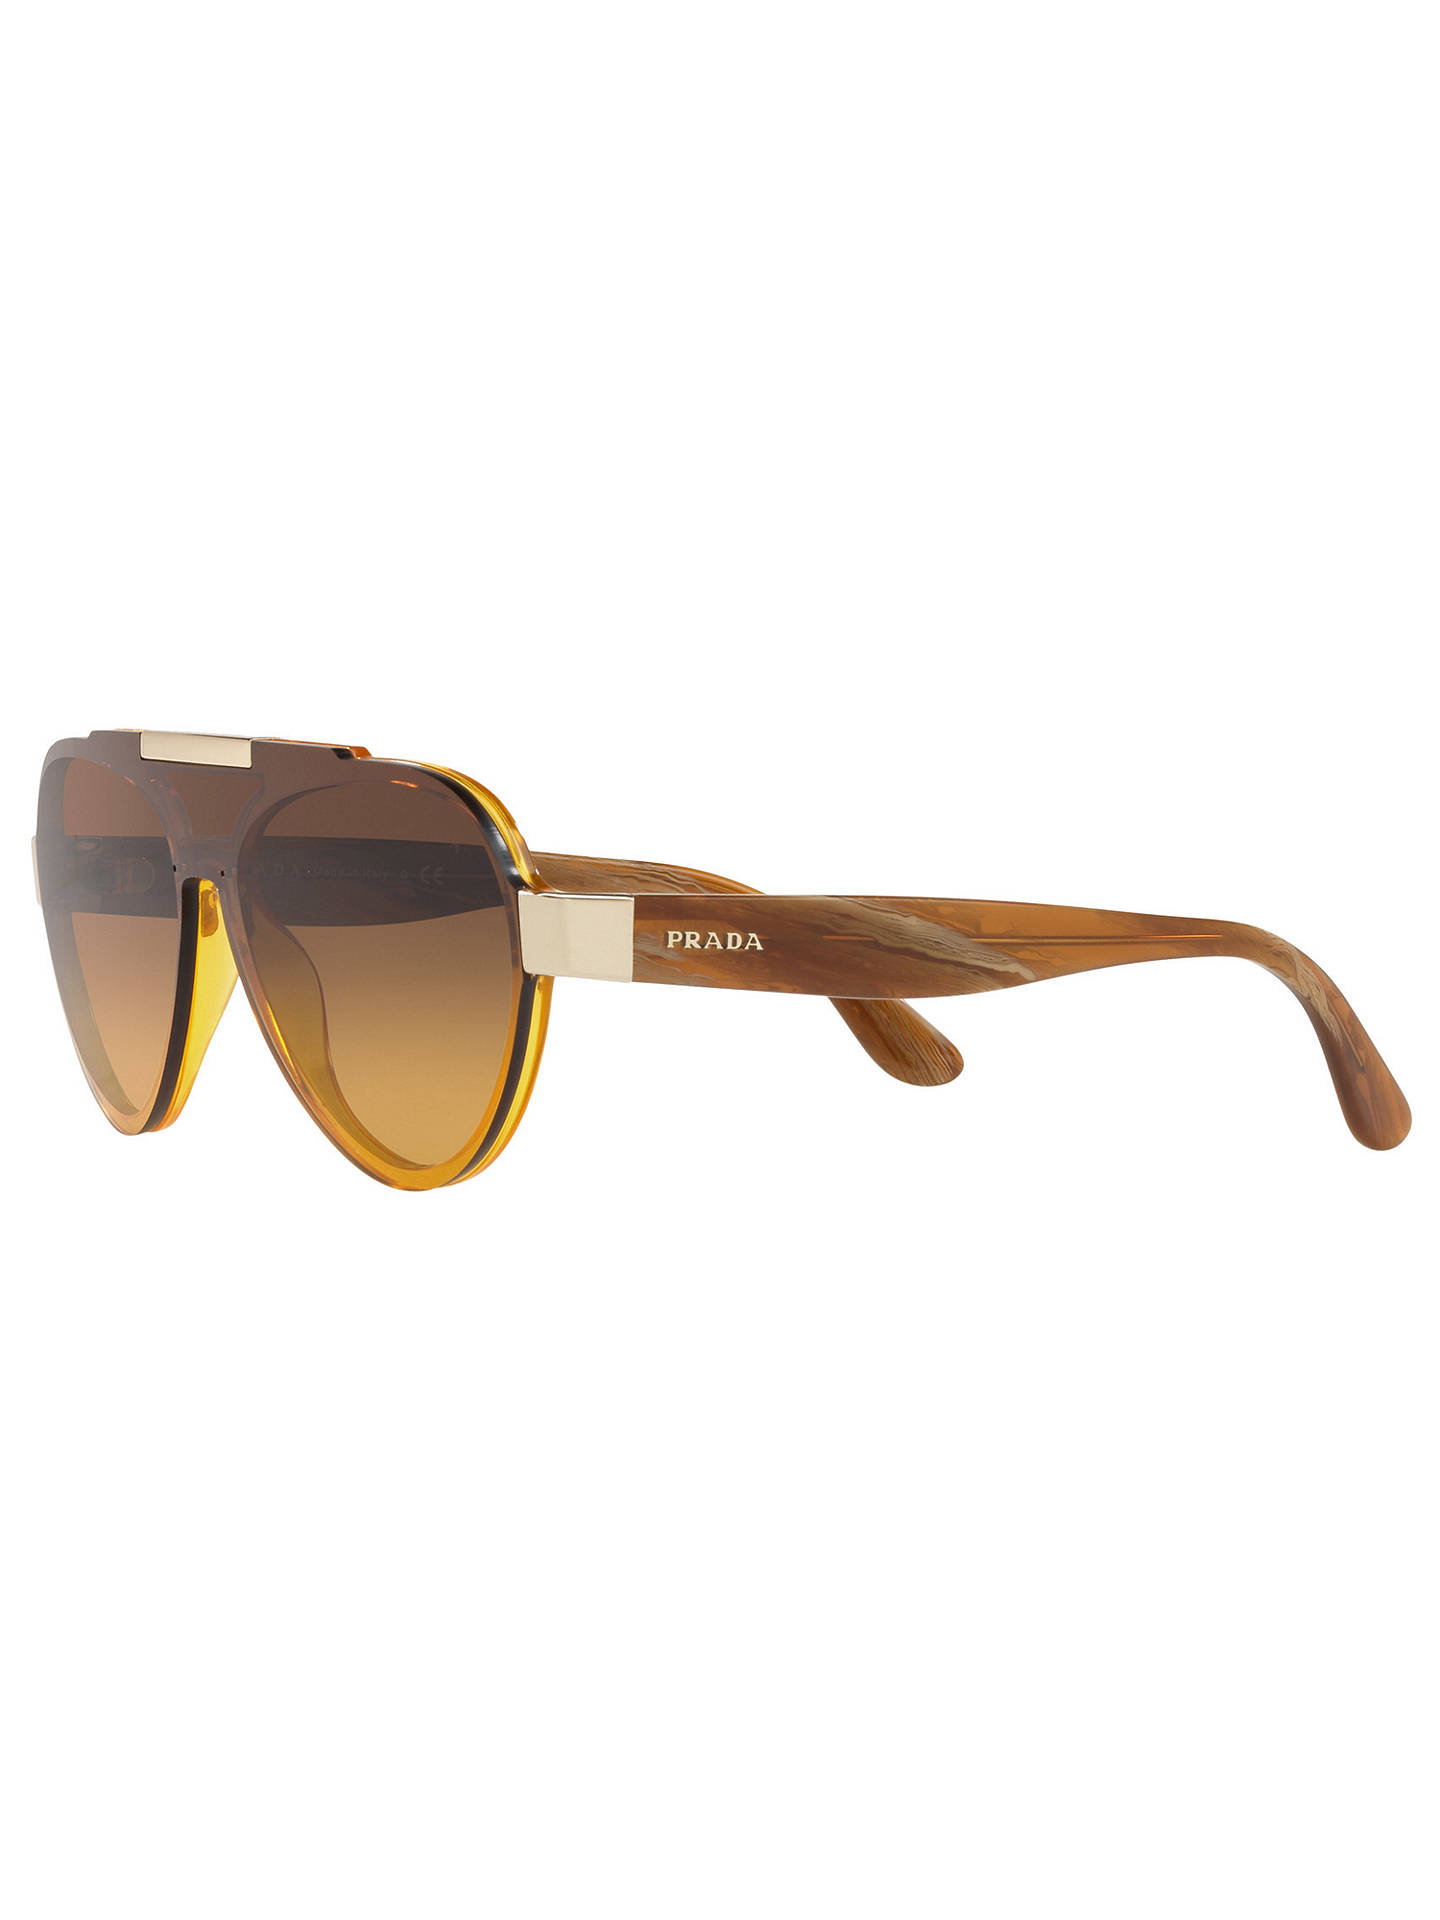 Buy Prada PR 01US Aviator Sunglasses, Yellow/Yellow Brown Gradient Online at johnlewis.com